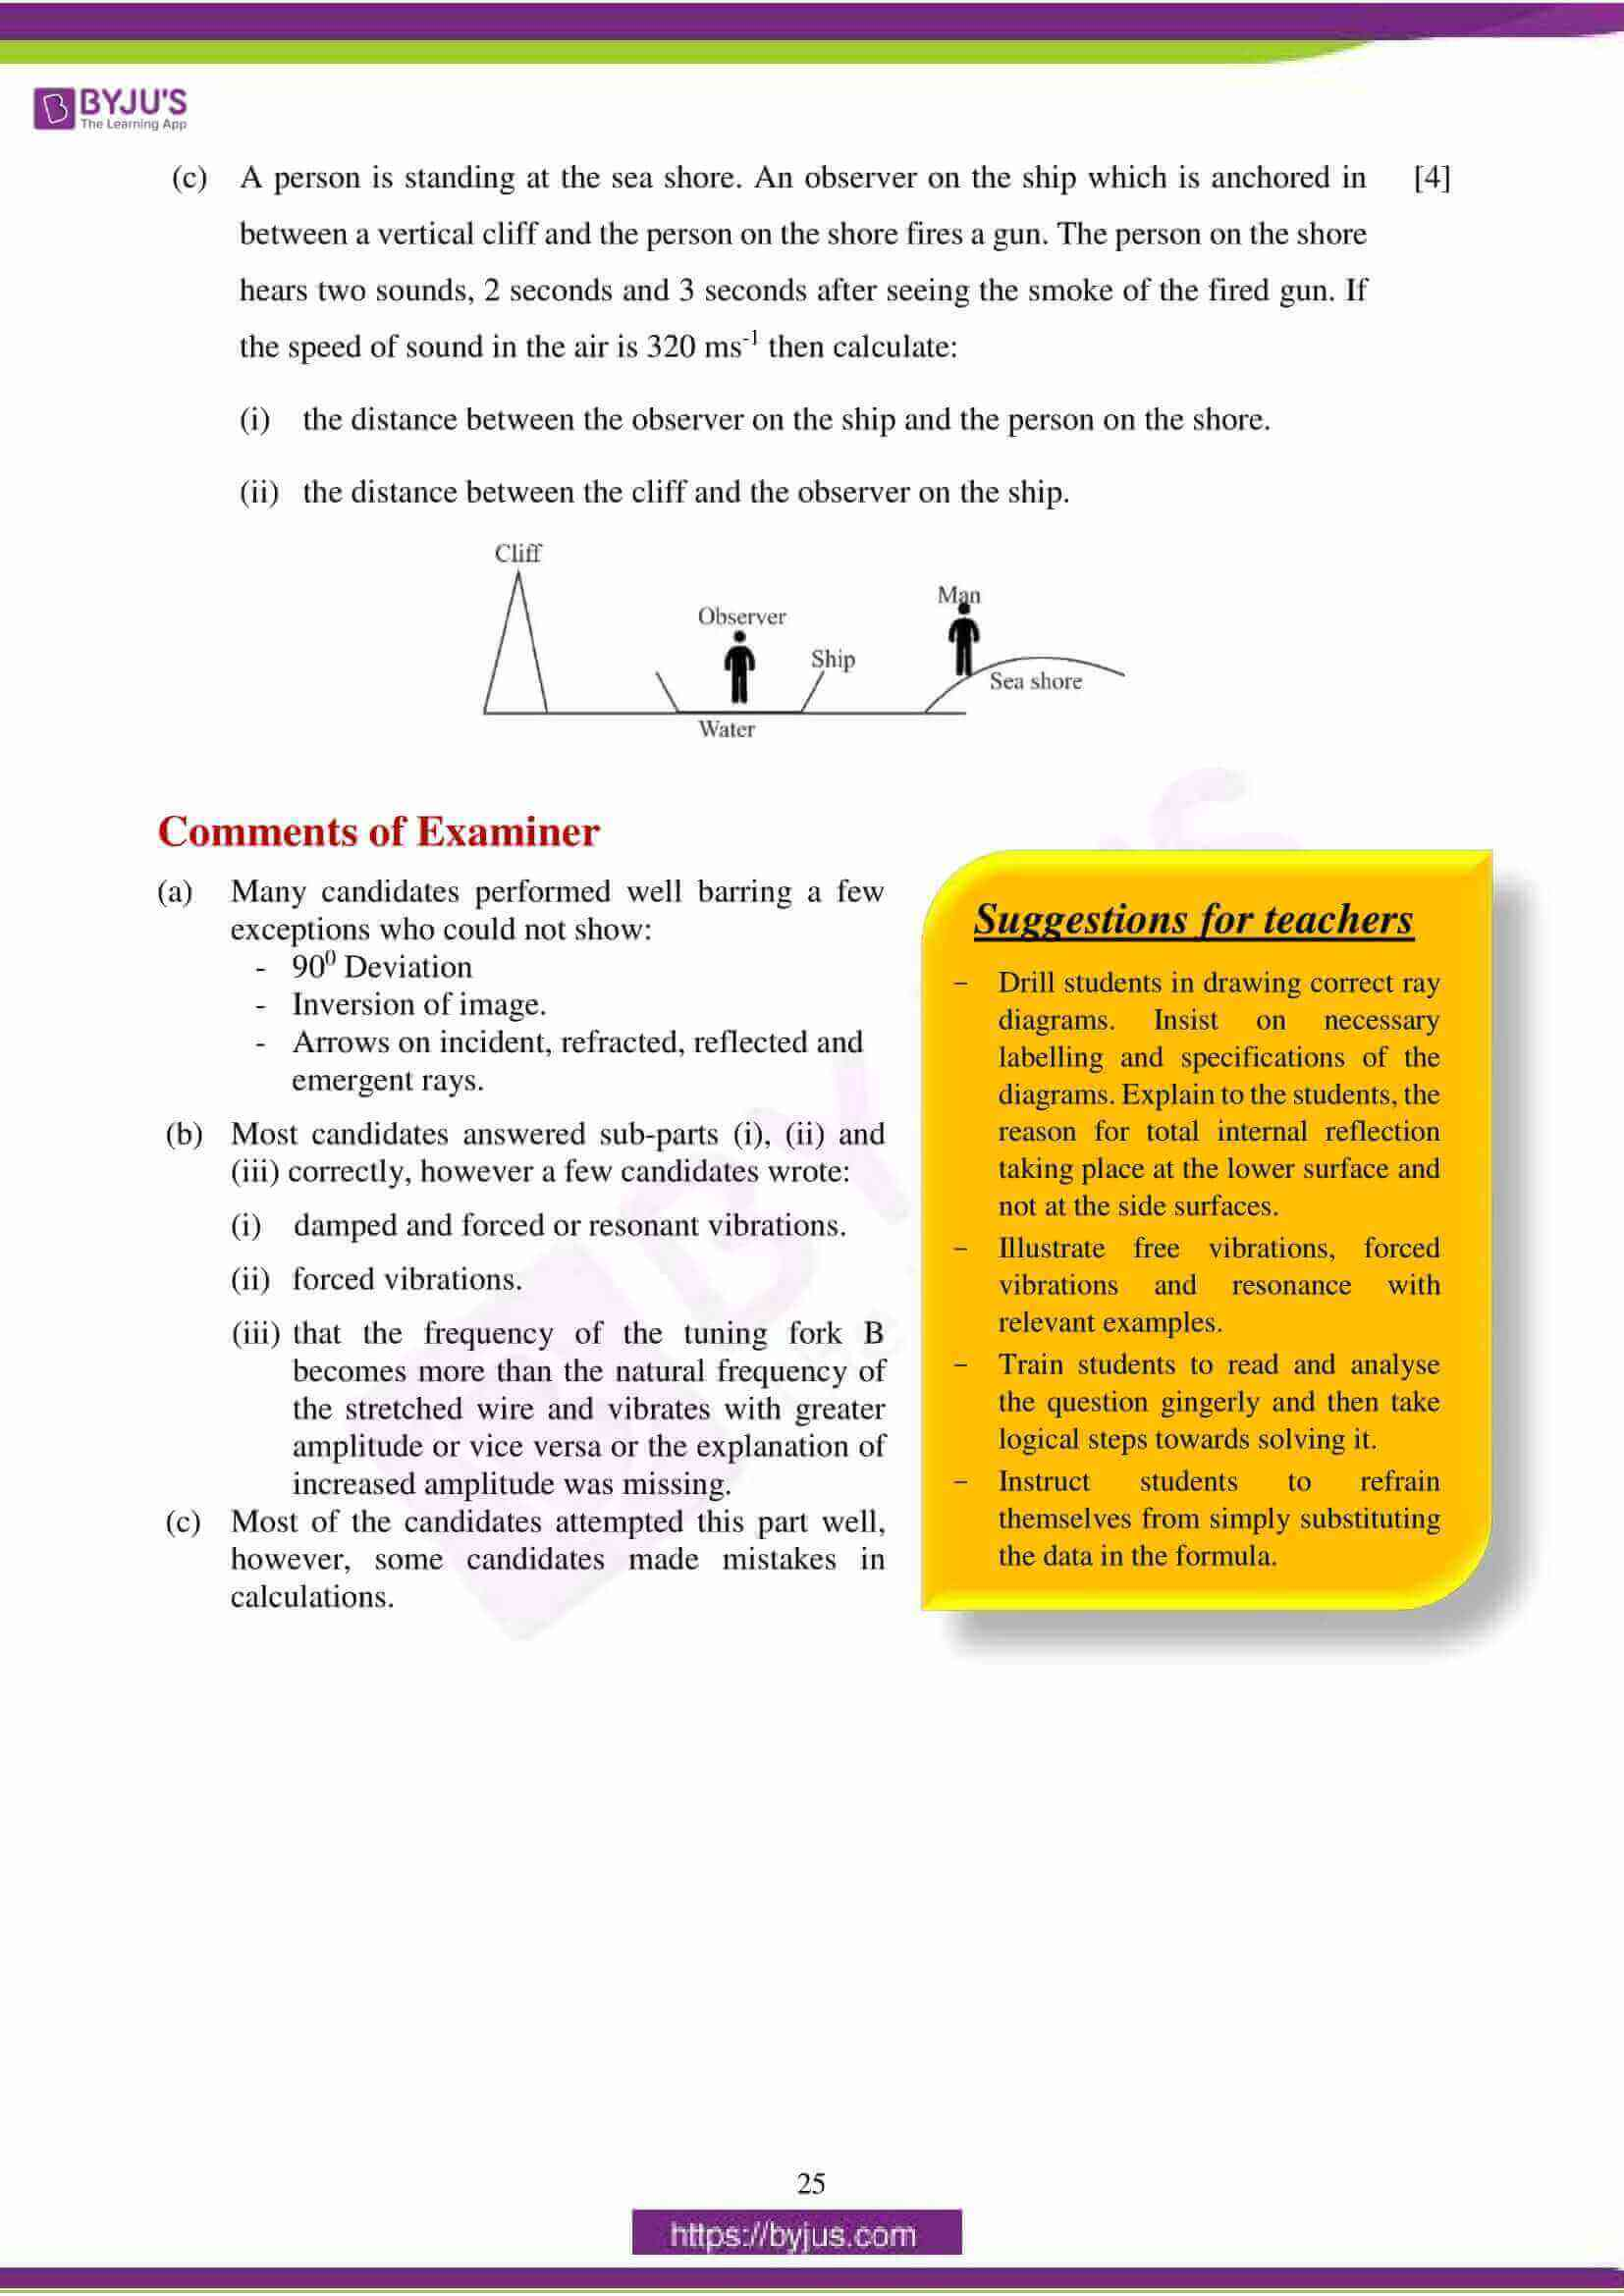 icse class 10 physics question paper solution 2018 16